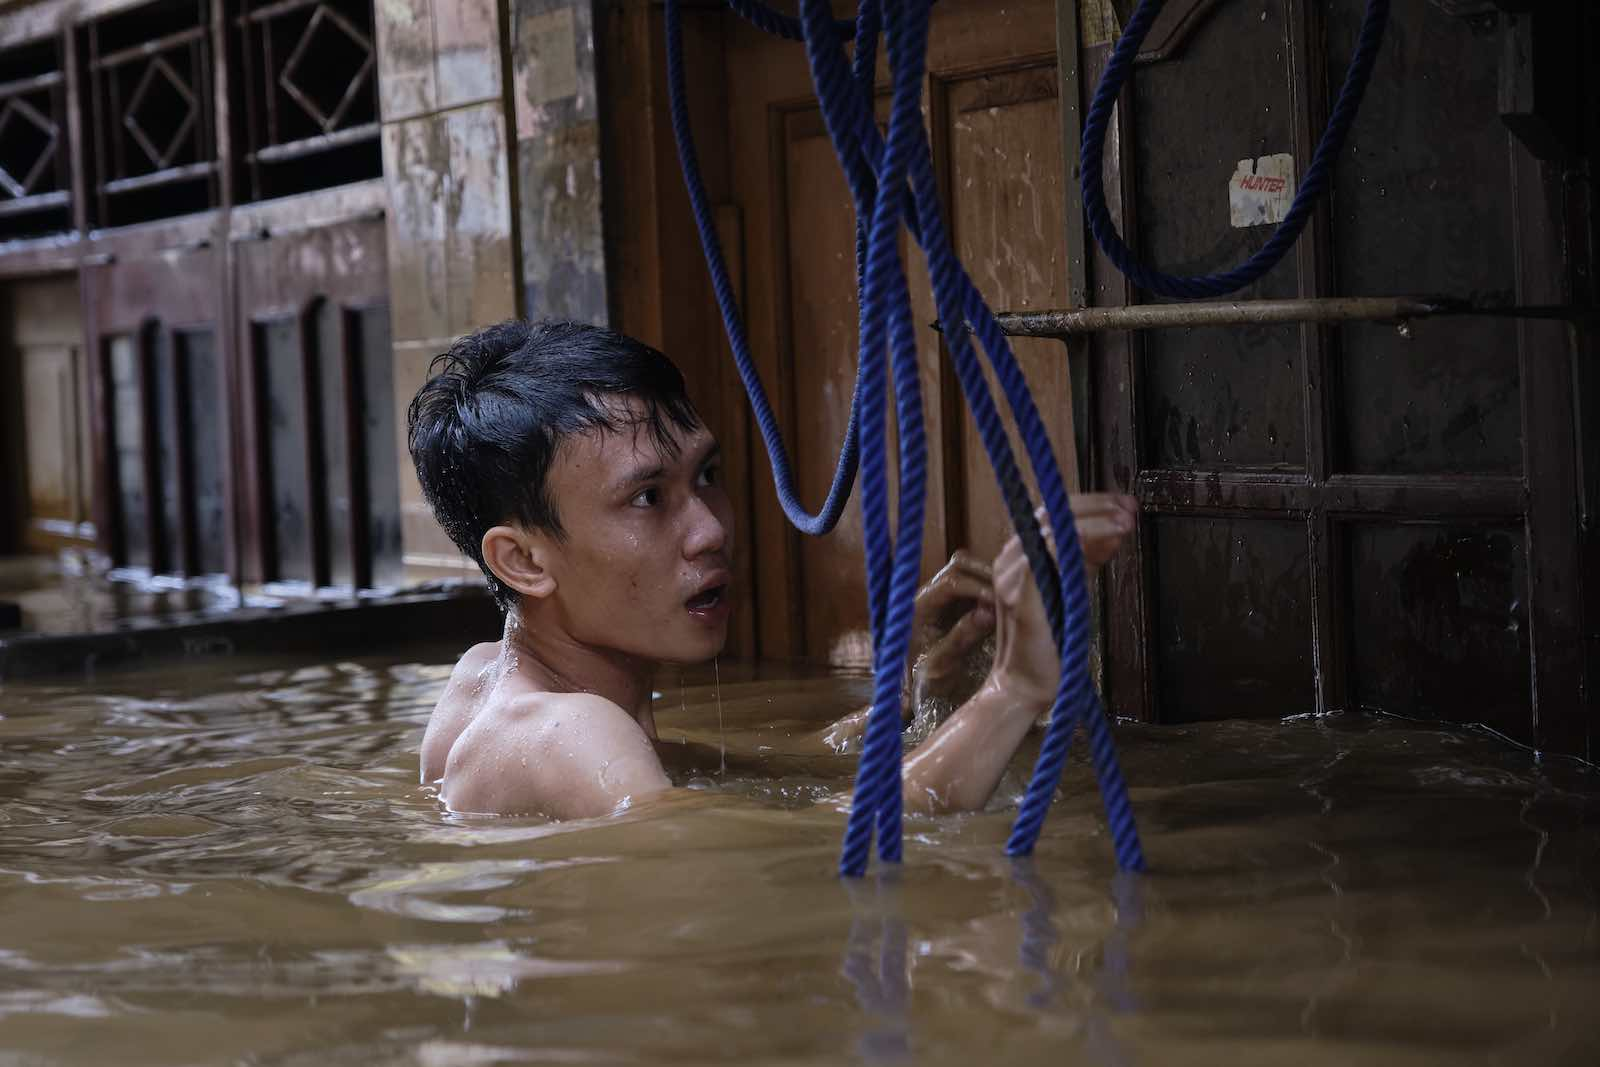 A man tries to access his house in a flooded neighbourhood in Jakarta, 2 January (Photo: Ed Wray/Getty Images)